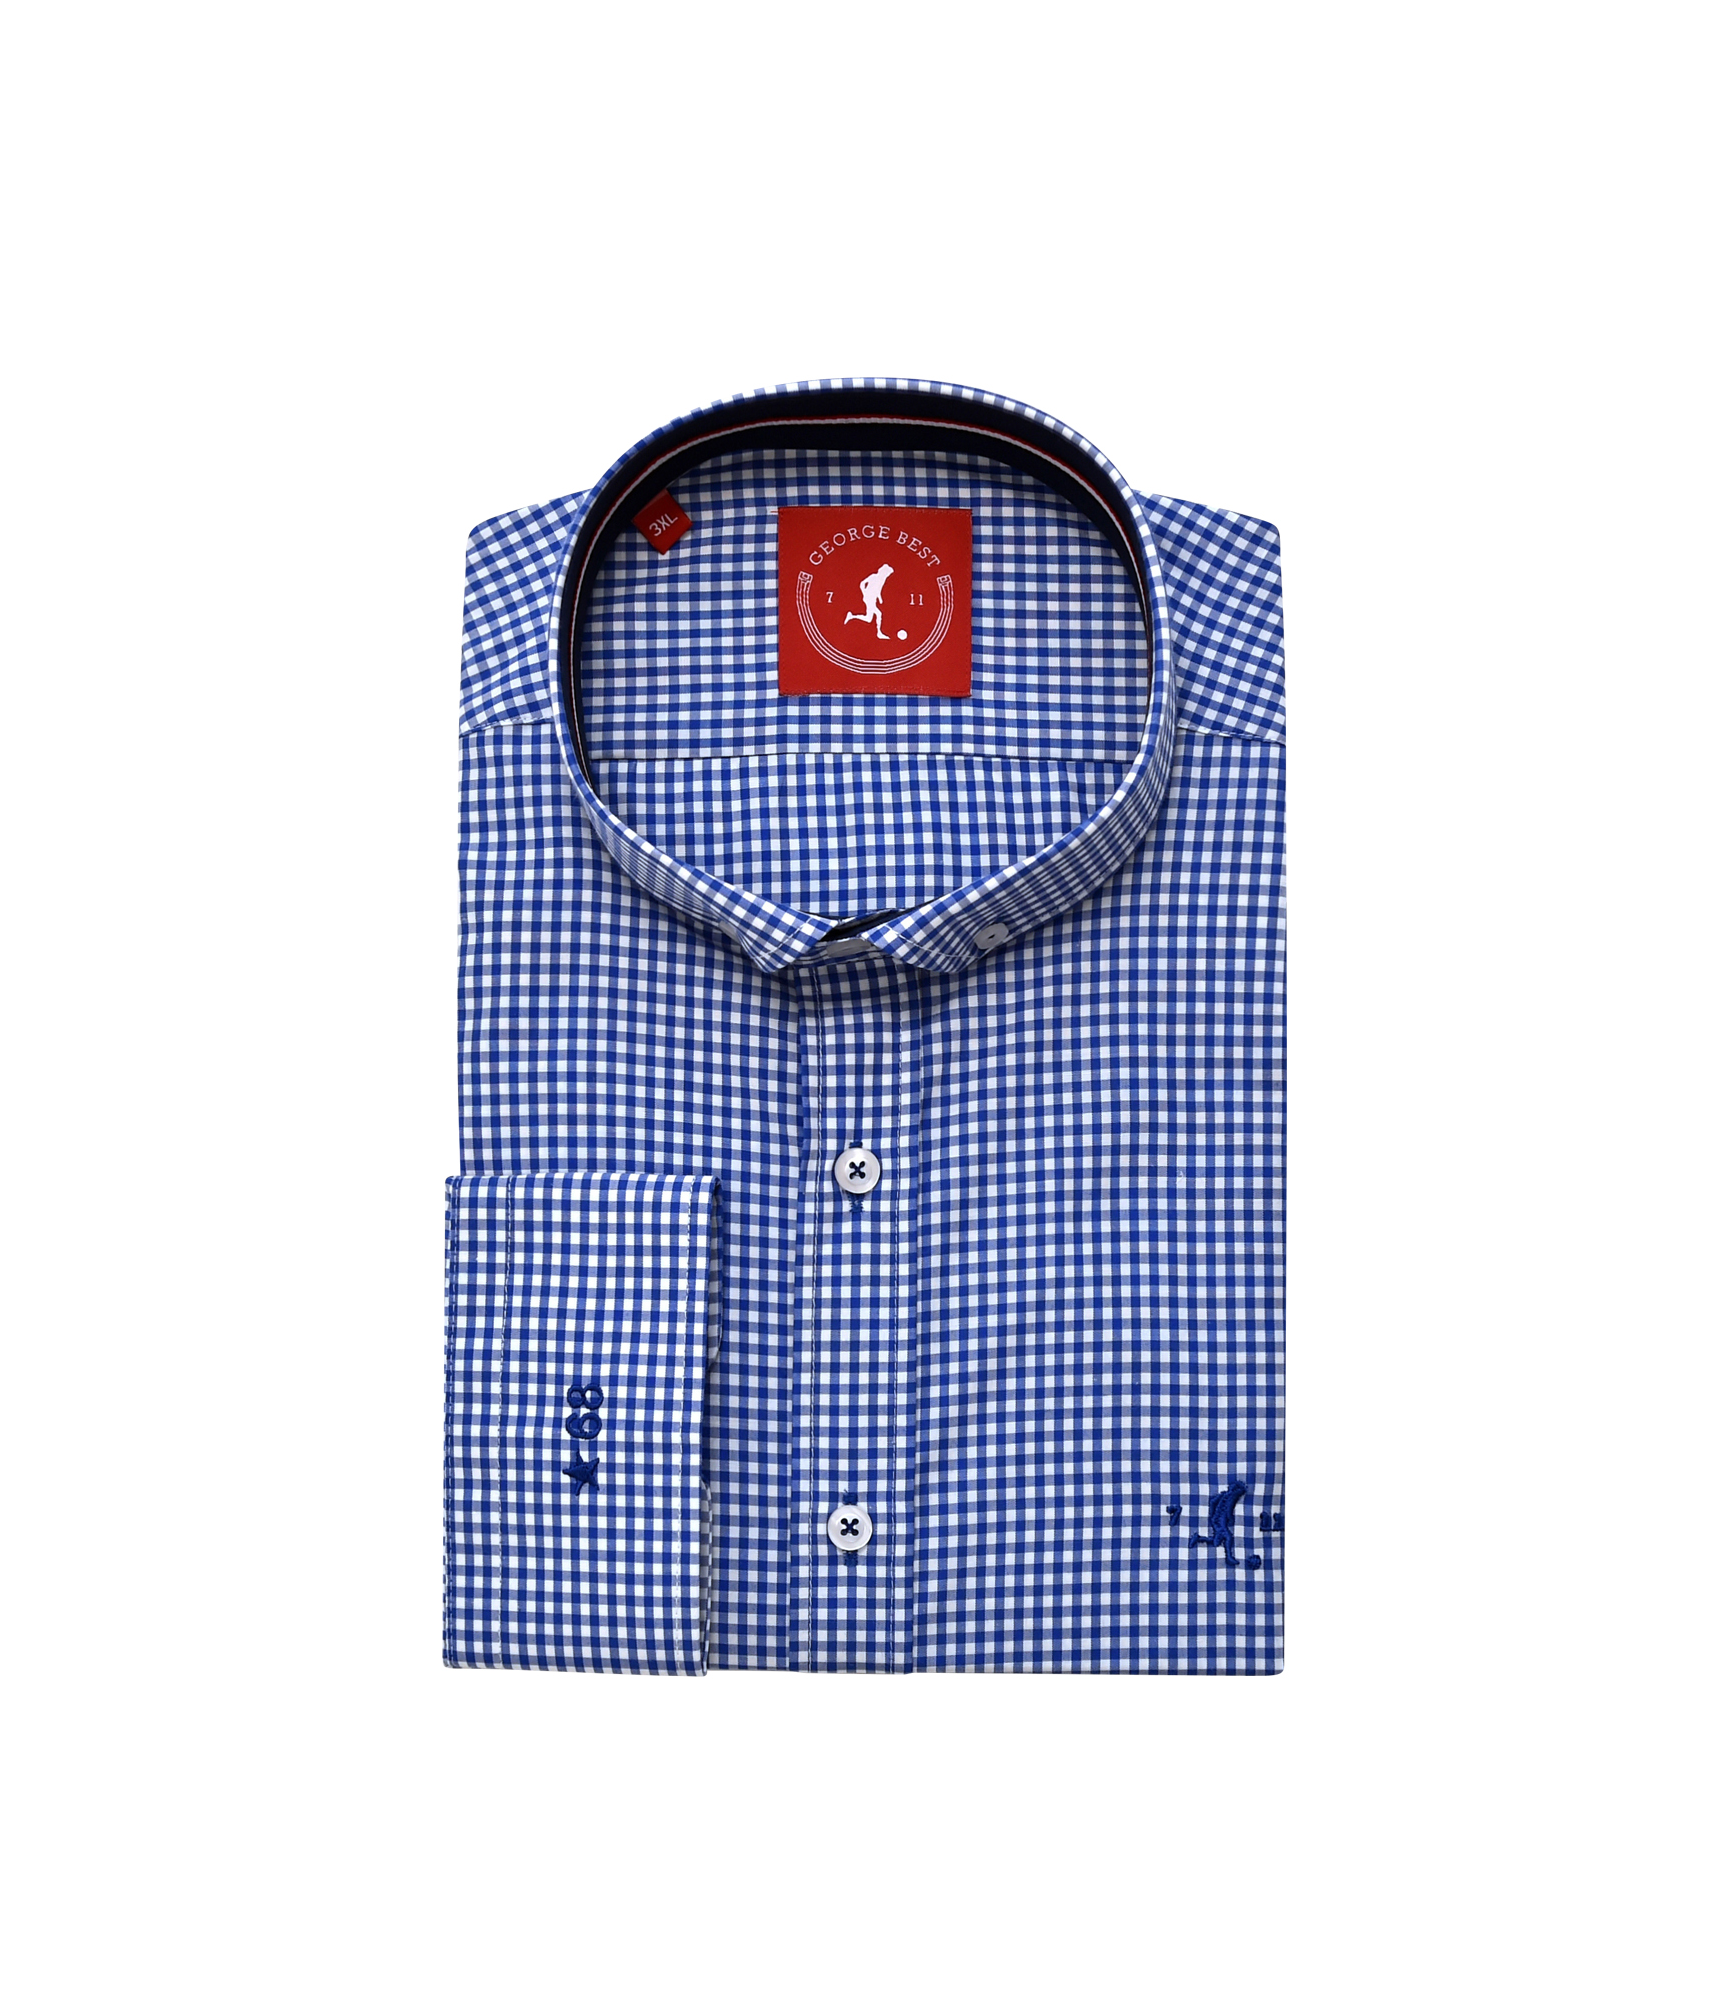 4f7f3cc61538 Best Tailored Fit Royal Blue Gingham Check Shirt With Button Down Collar - George  Best Clothing